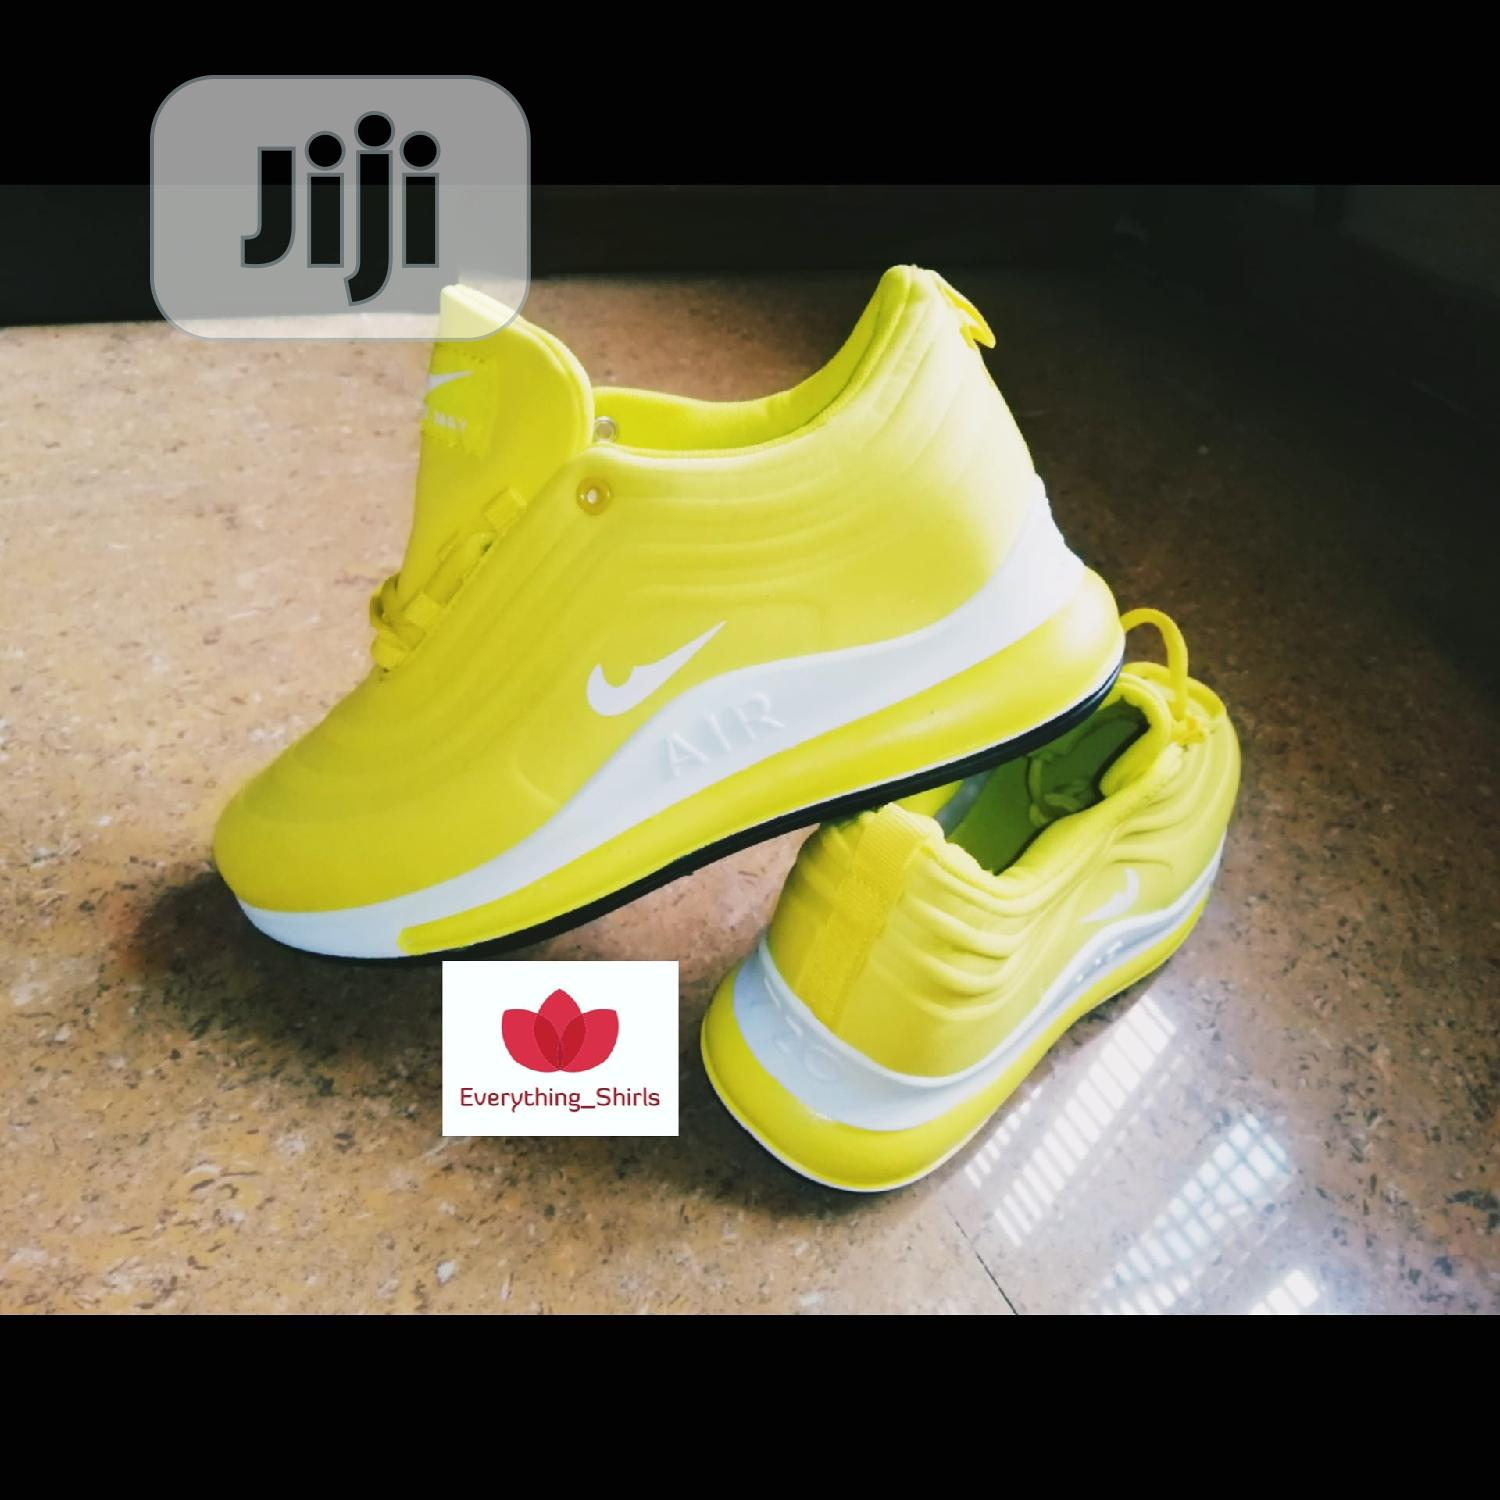 Unisex Sneakers | Shoes for sale in Alimosho, Lagos State, Nigeria